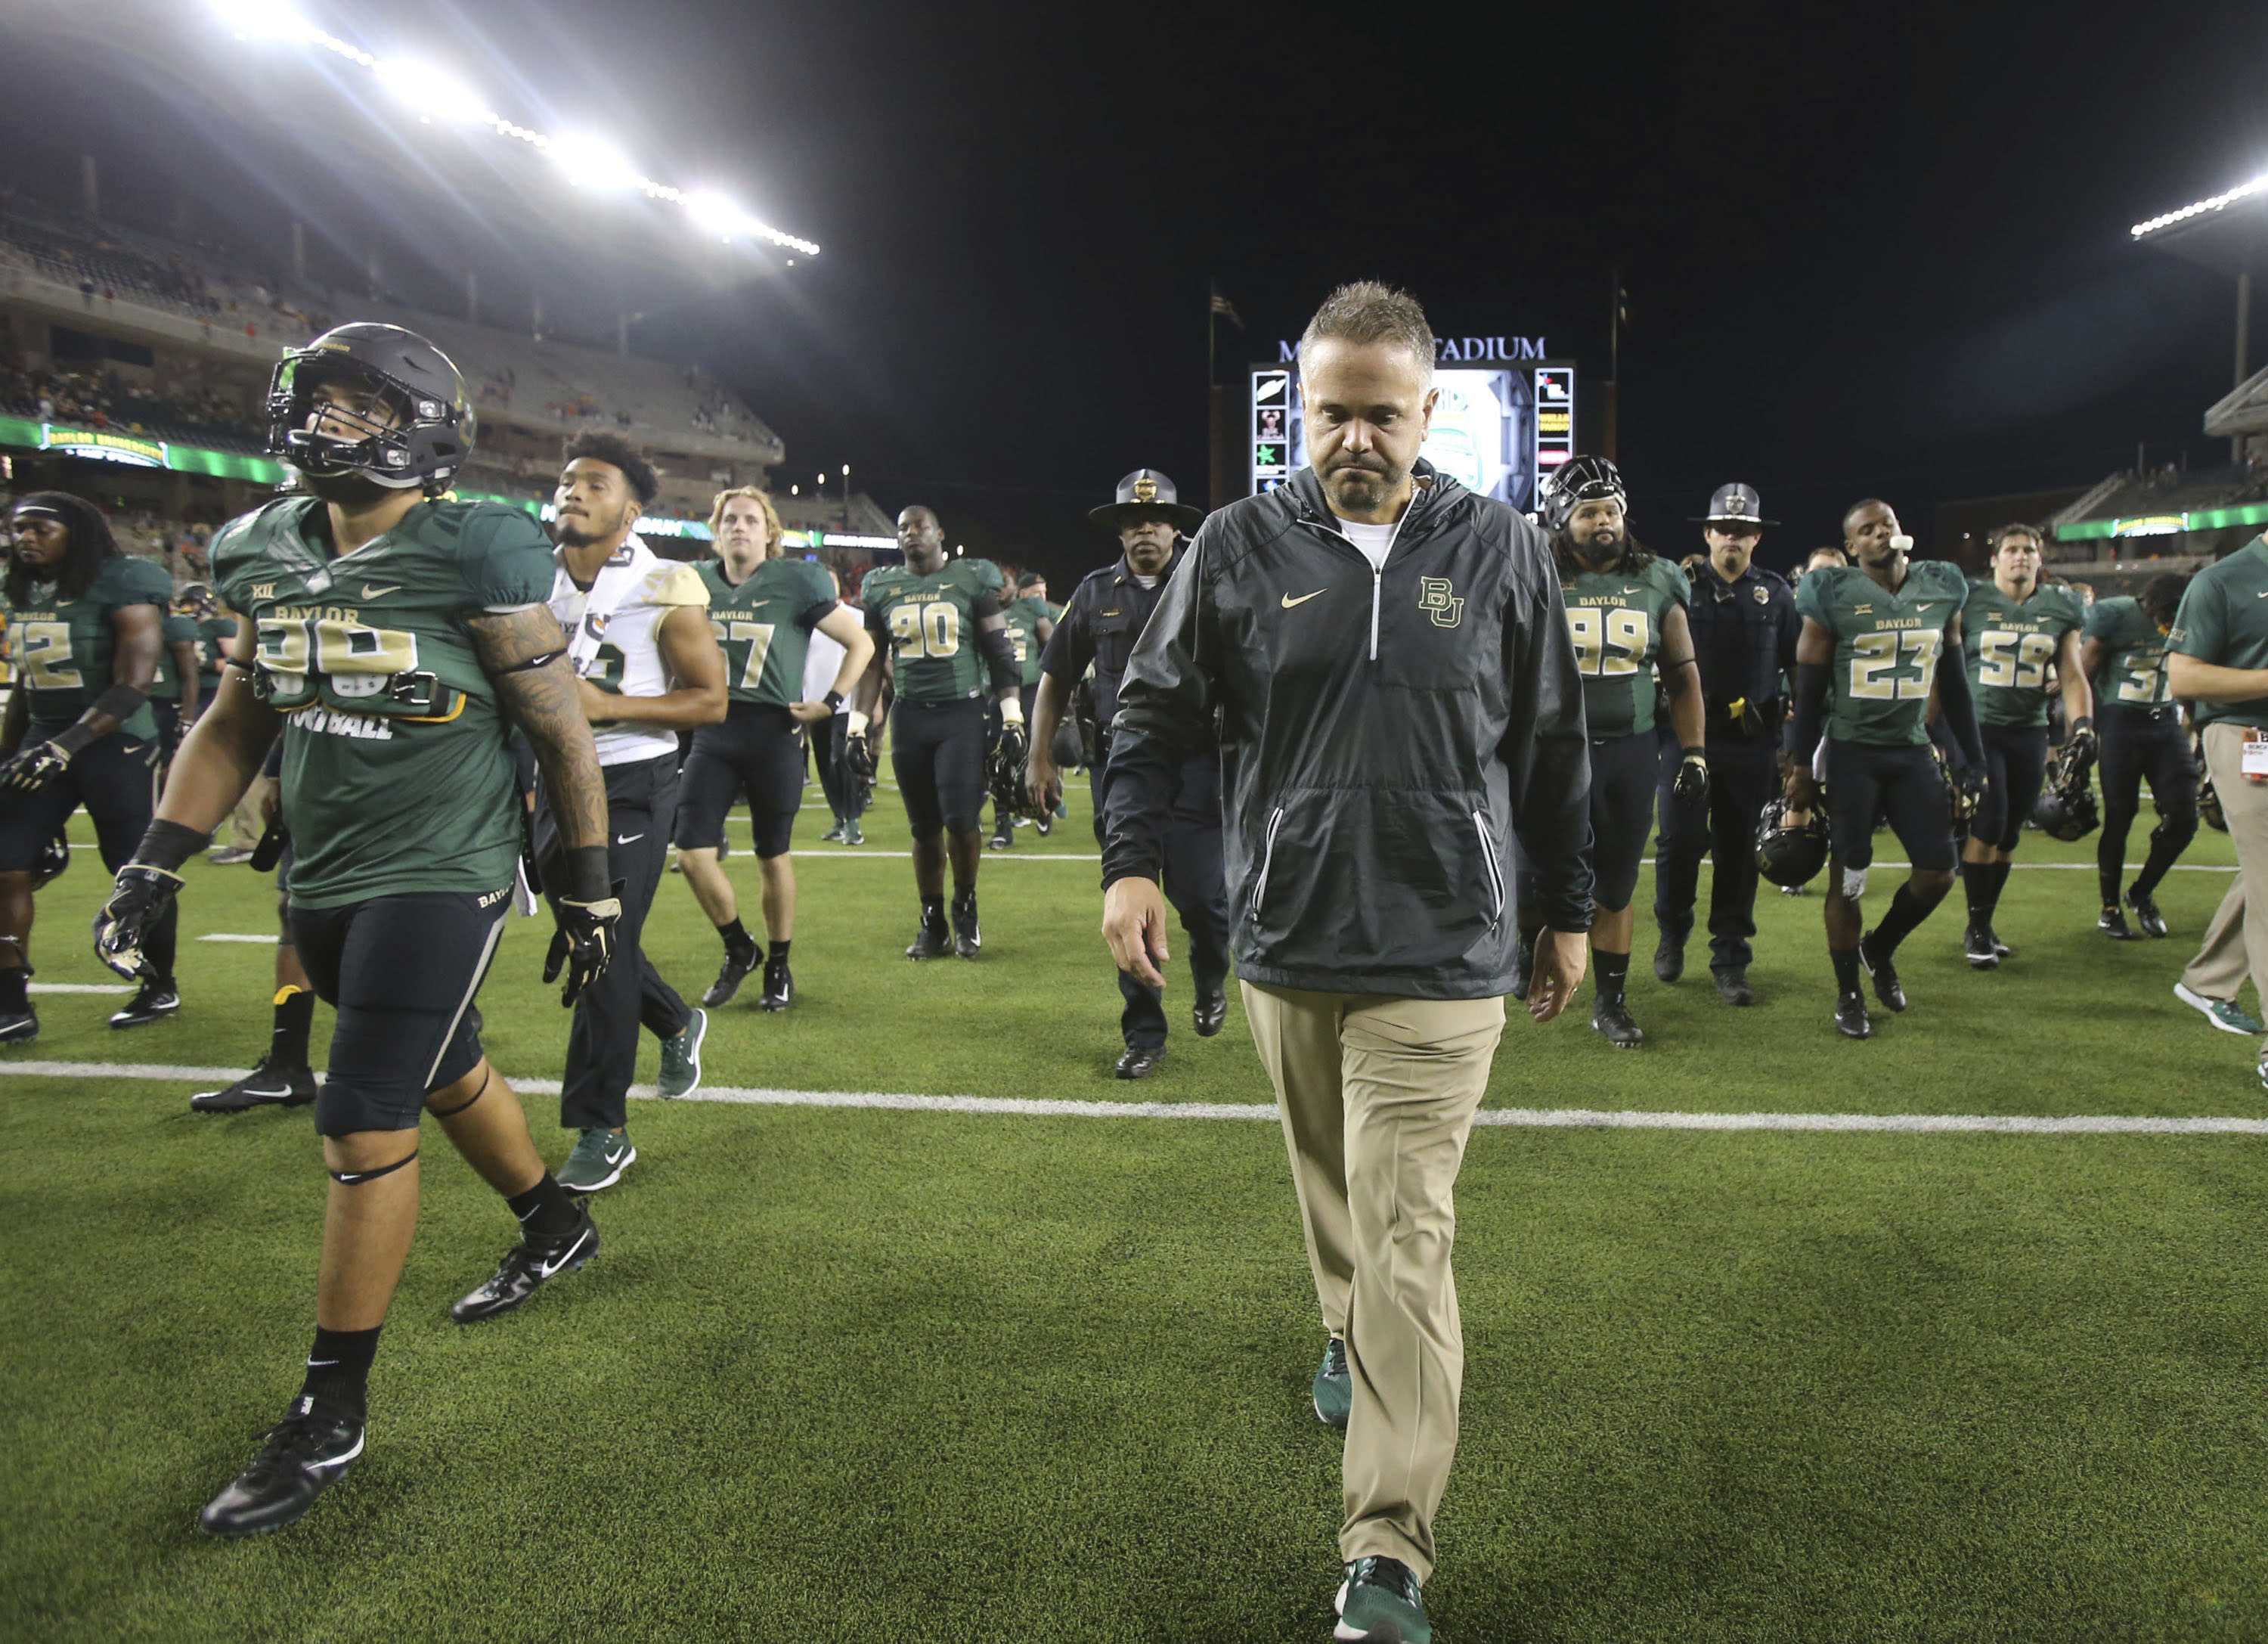 Baylor S Matt Rhule Has The Toughest Job In College Football